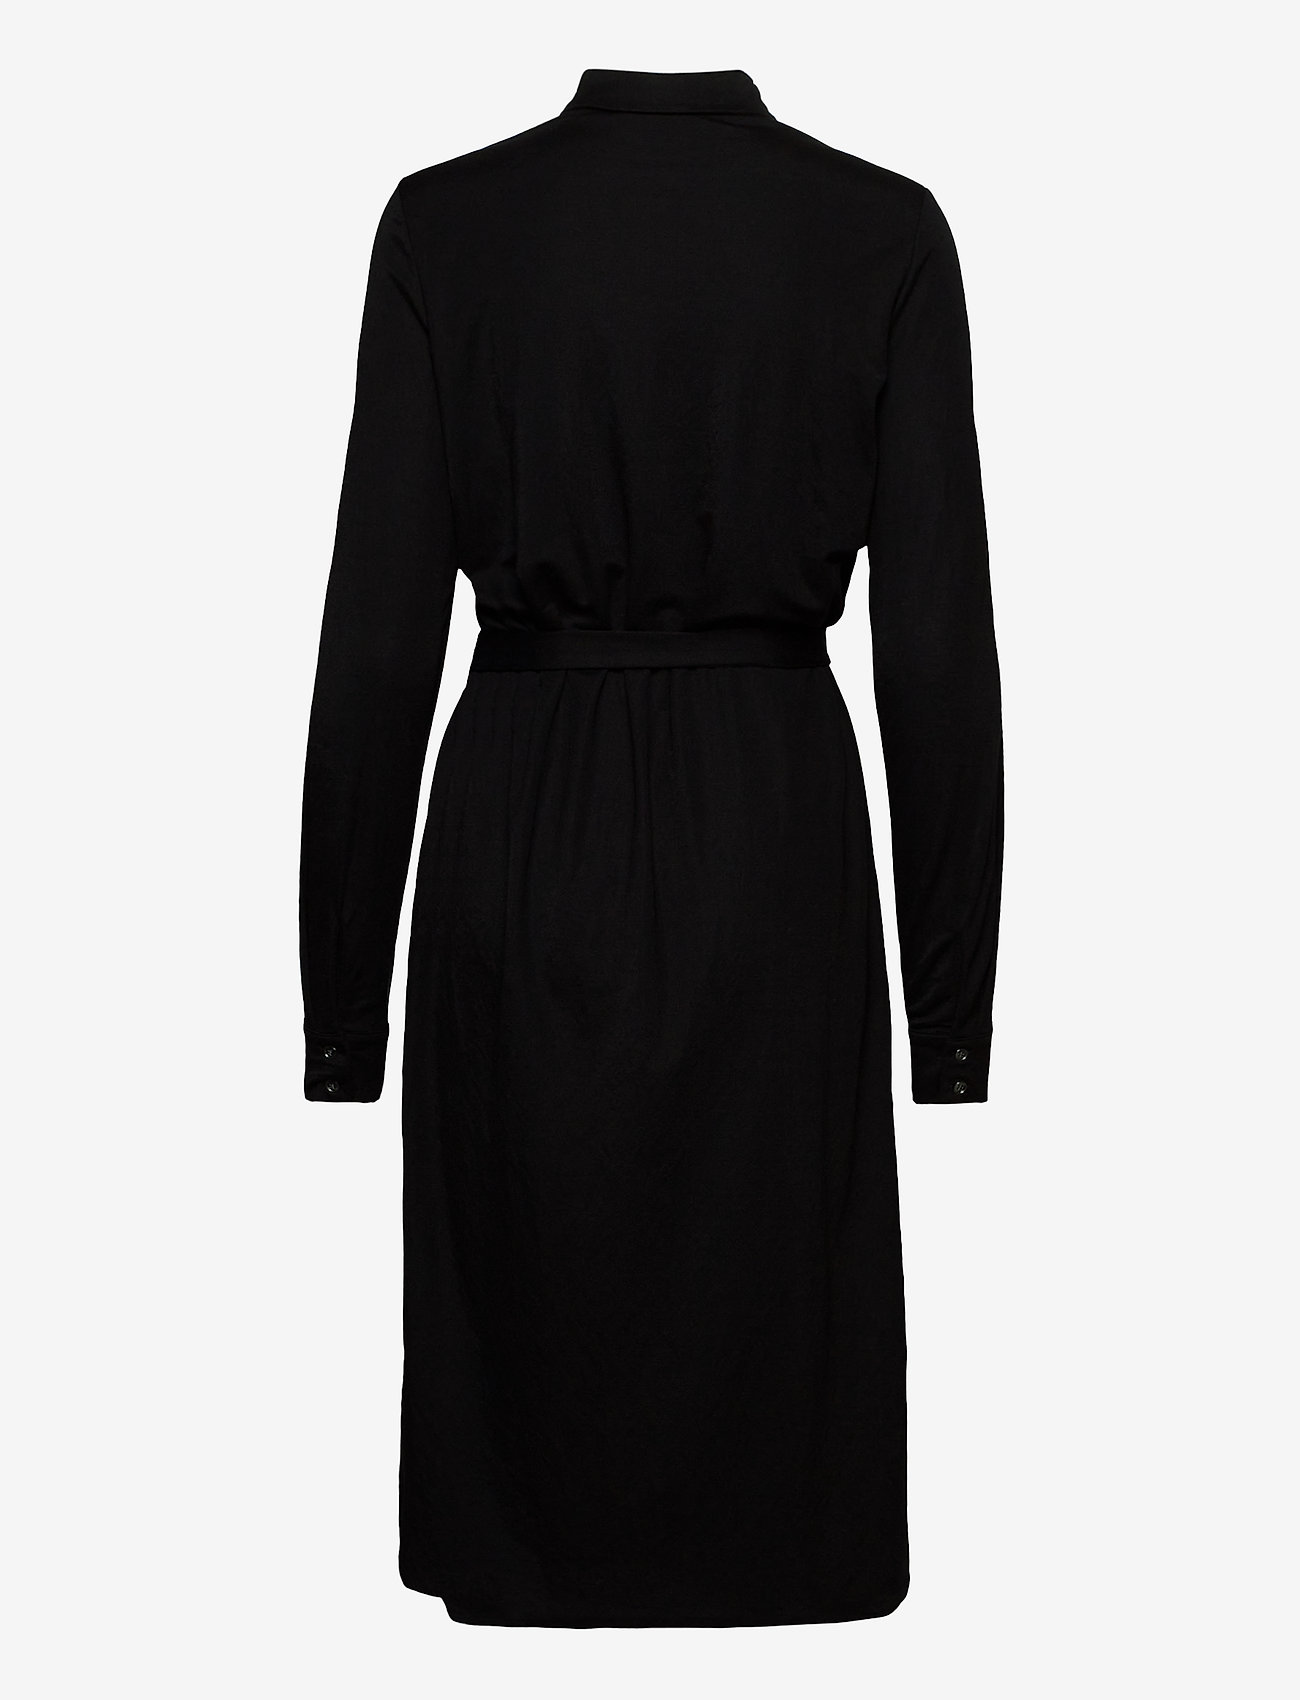 Vila - VISAFINA MIDI L/S DRESS - NOOS - shirt dresses - black - 1